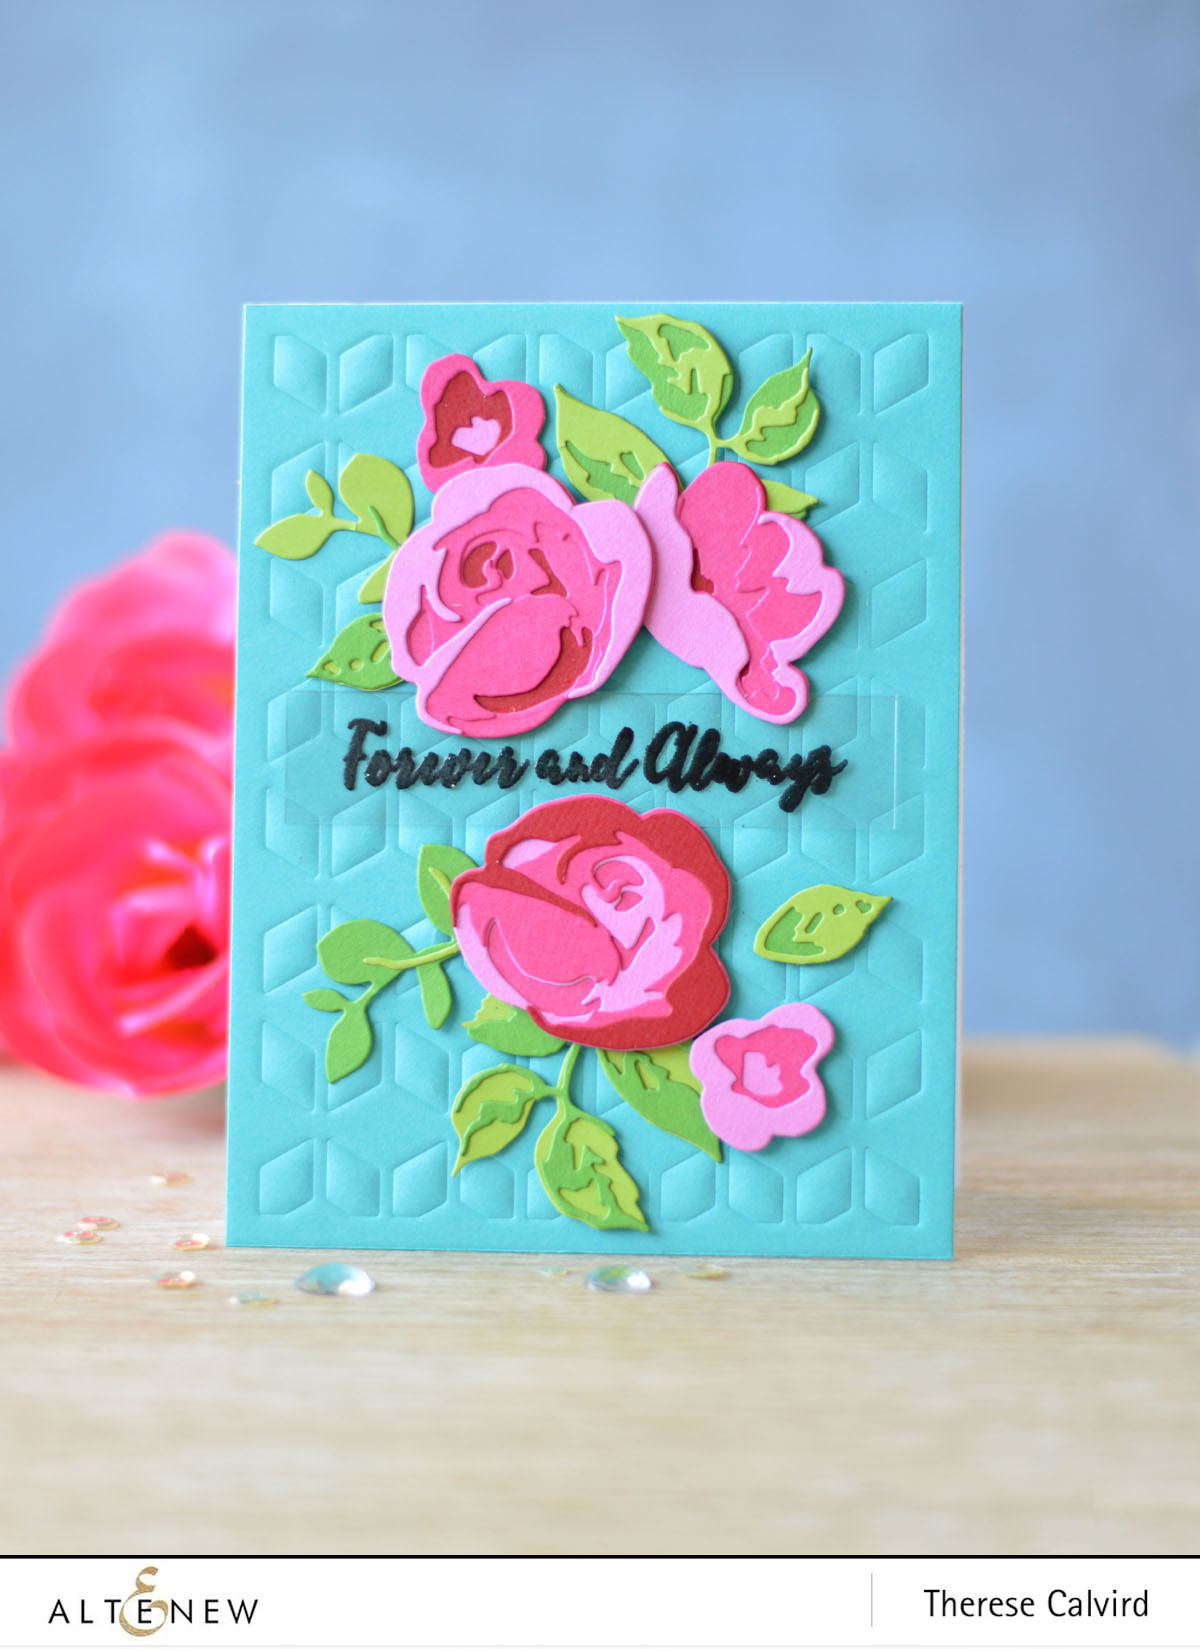 Altenew Blog Inspiring Crafters With Elegant Designs And